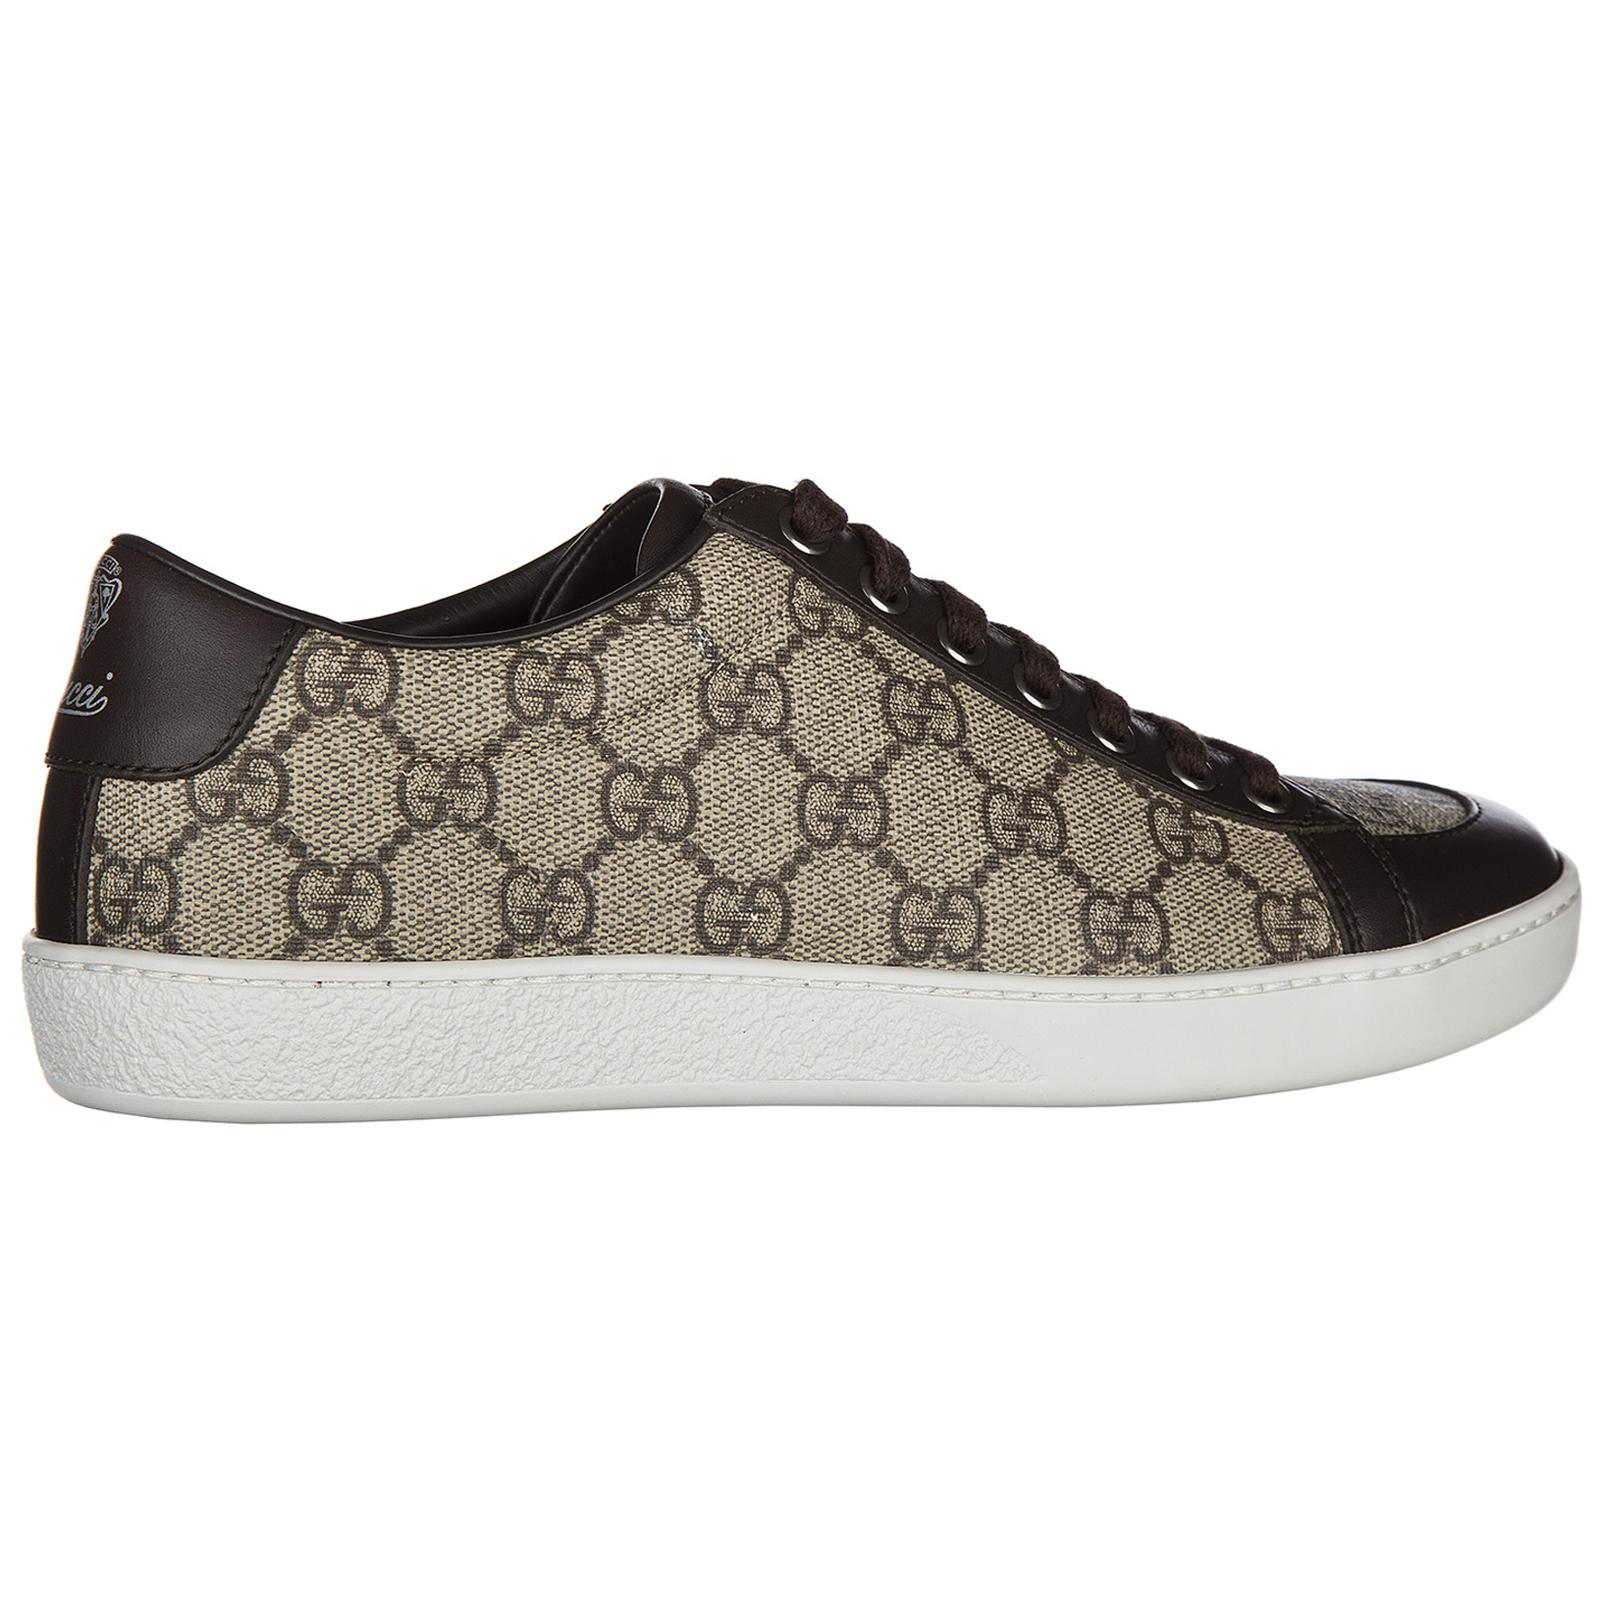 Gucci Leather Shoes Trainers Sneakers